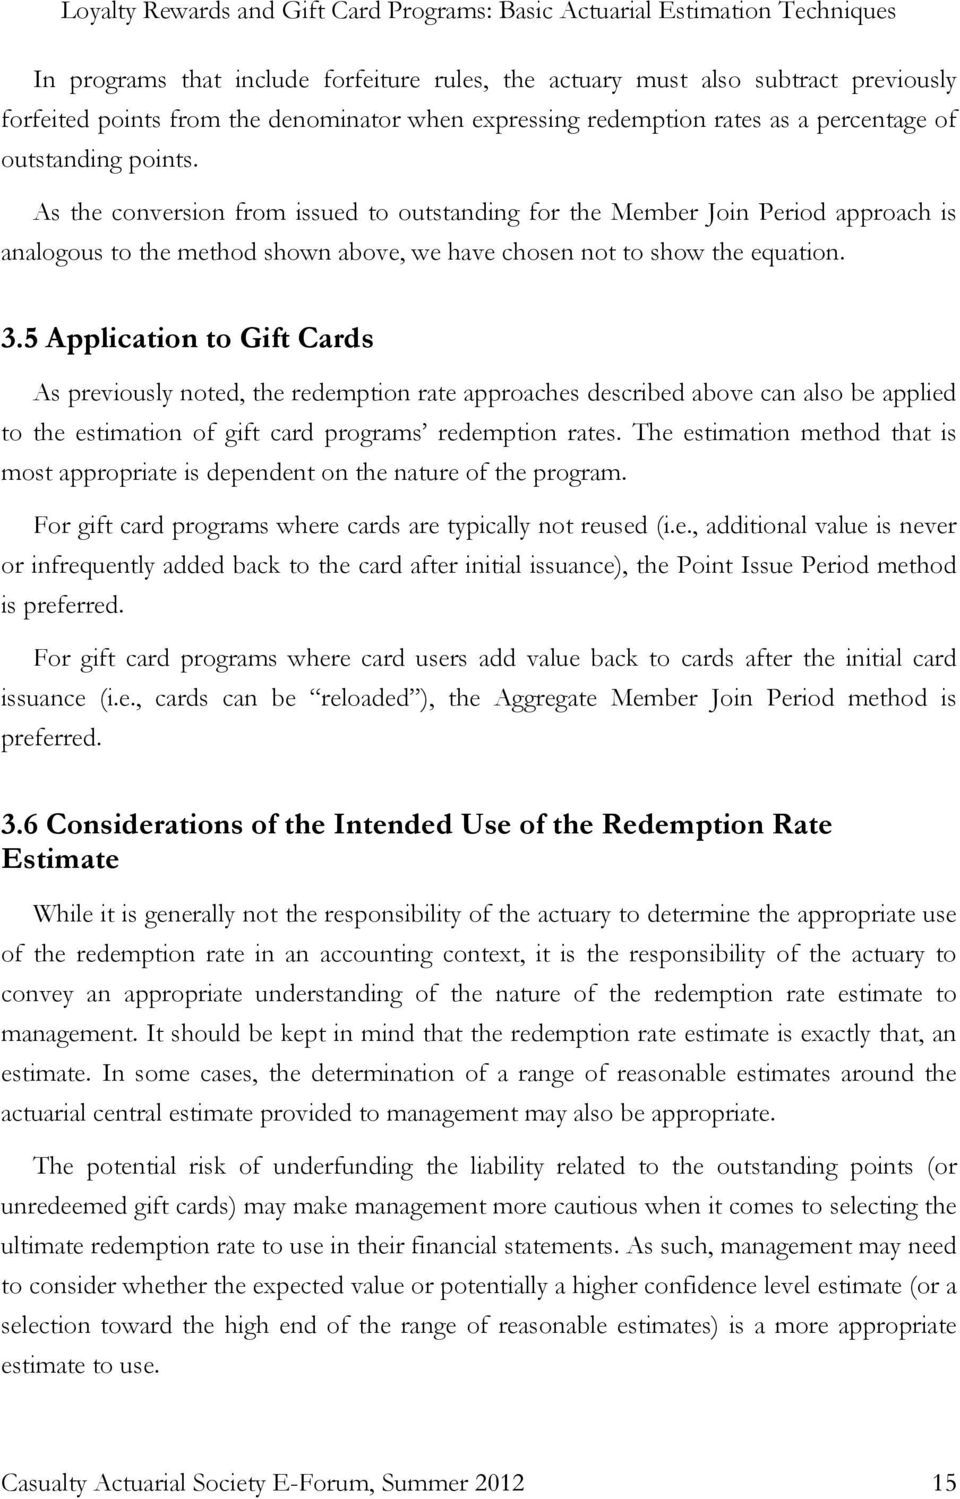 5 Application to Gift Cads As peviously noted, the edemption ate appoaches descibed above can also be applied to the estimation of gift cad pogams edemption ates.